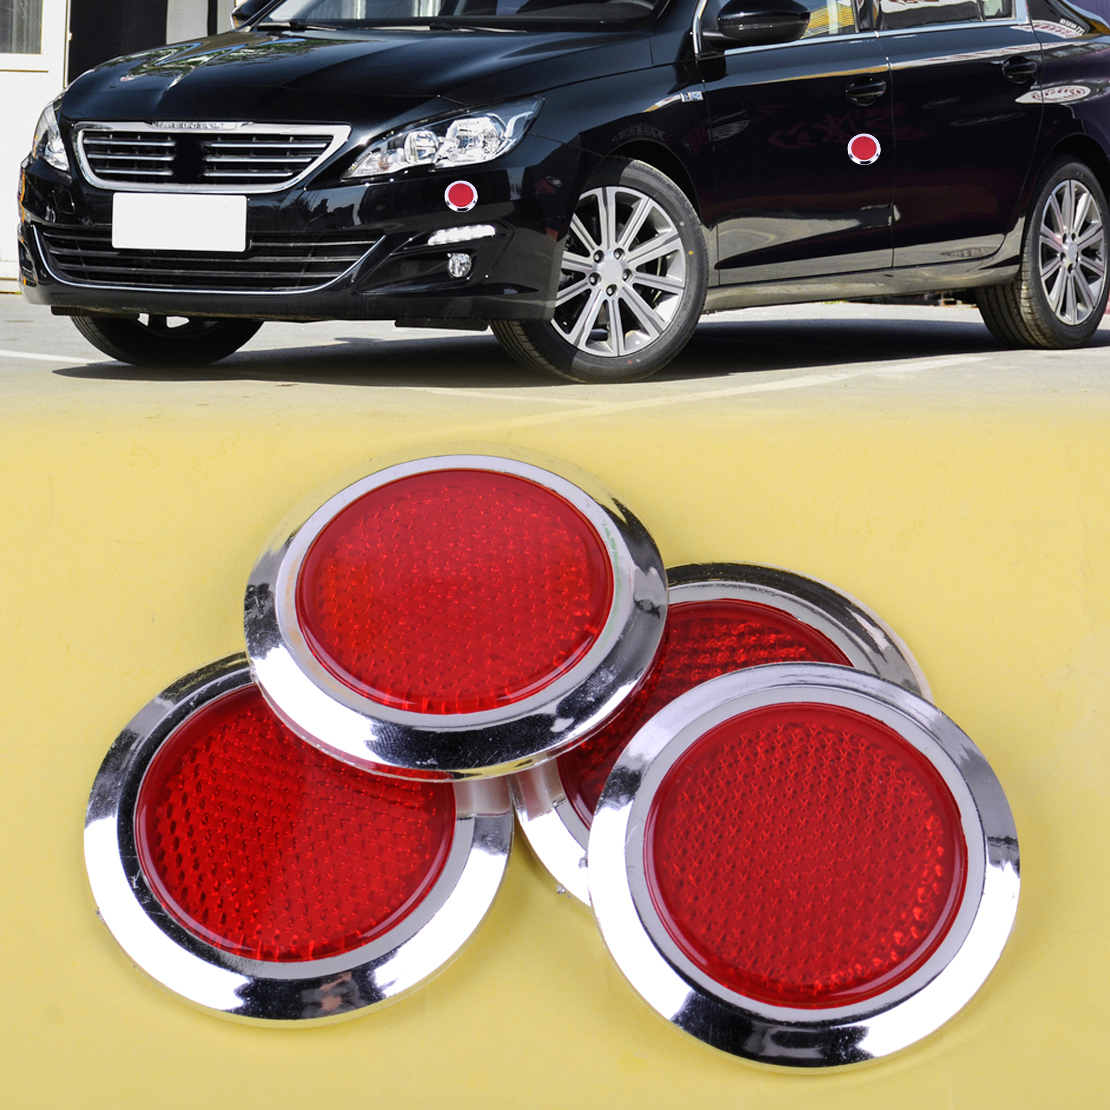 DWCX 4pcs Plastic Red Chrome Plated Round Car Reflective Sticker Self Adhesive Reflector Fit For VW Audi BMW Toyota Nissan arrow pattern car body reflective warming mark sticker golden red silver 10 pcs